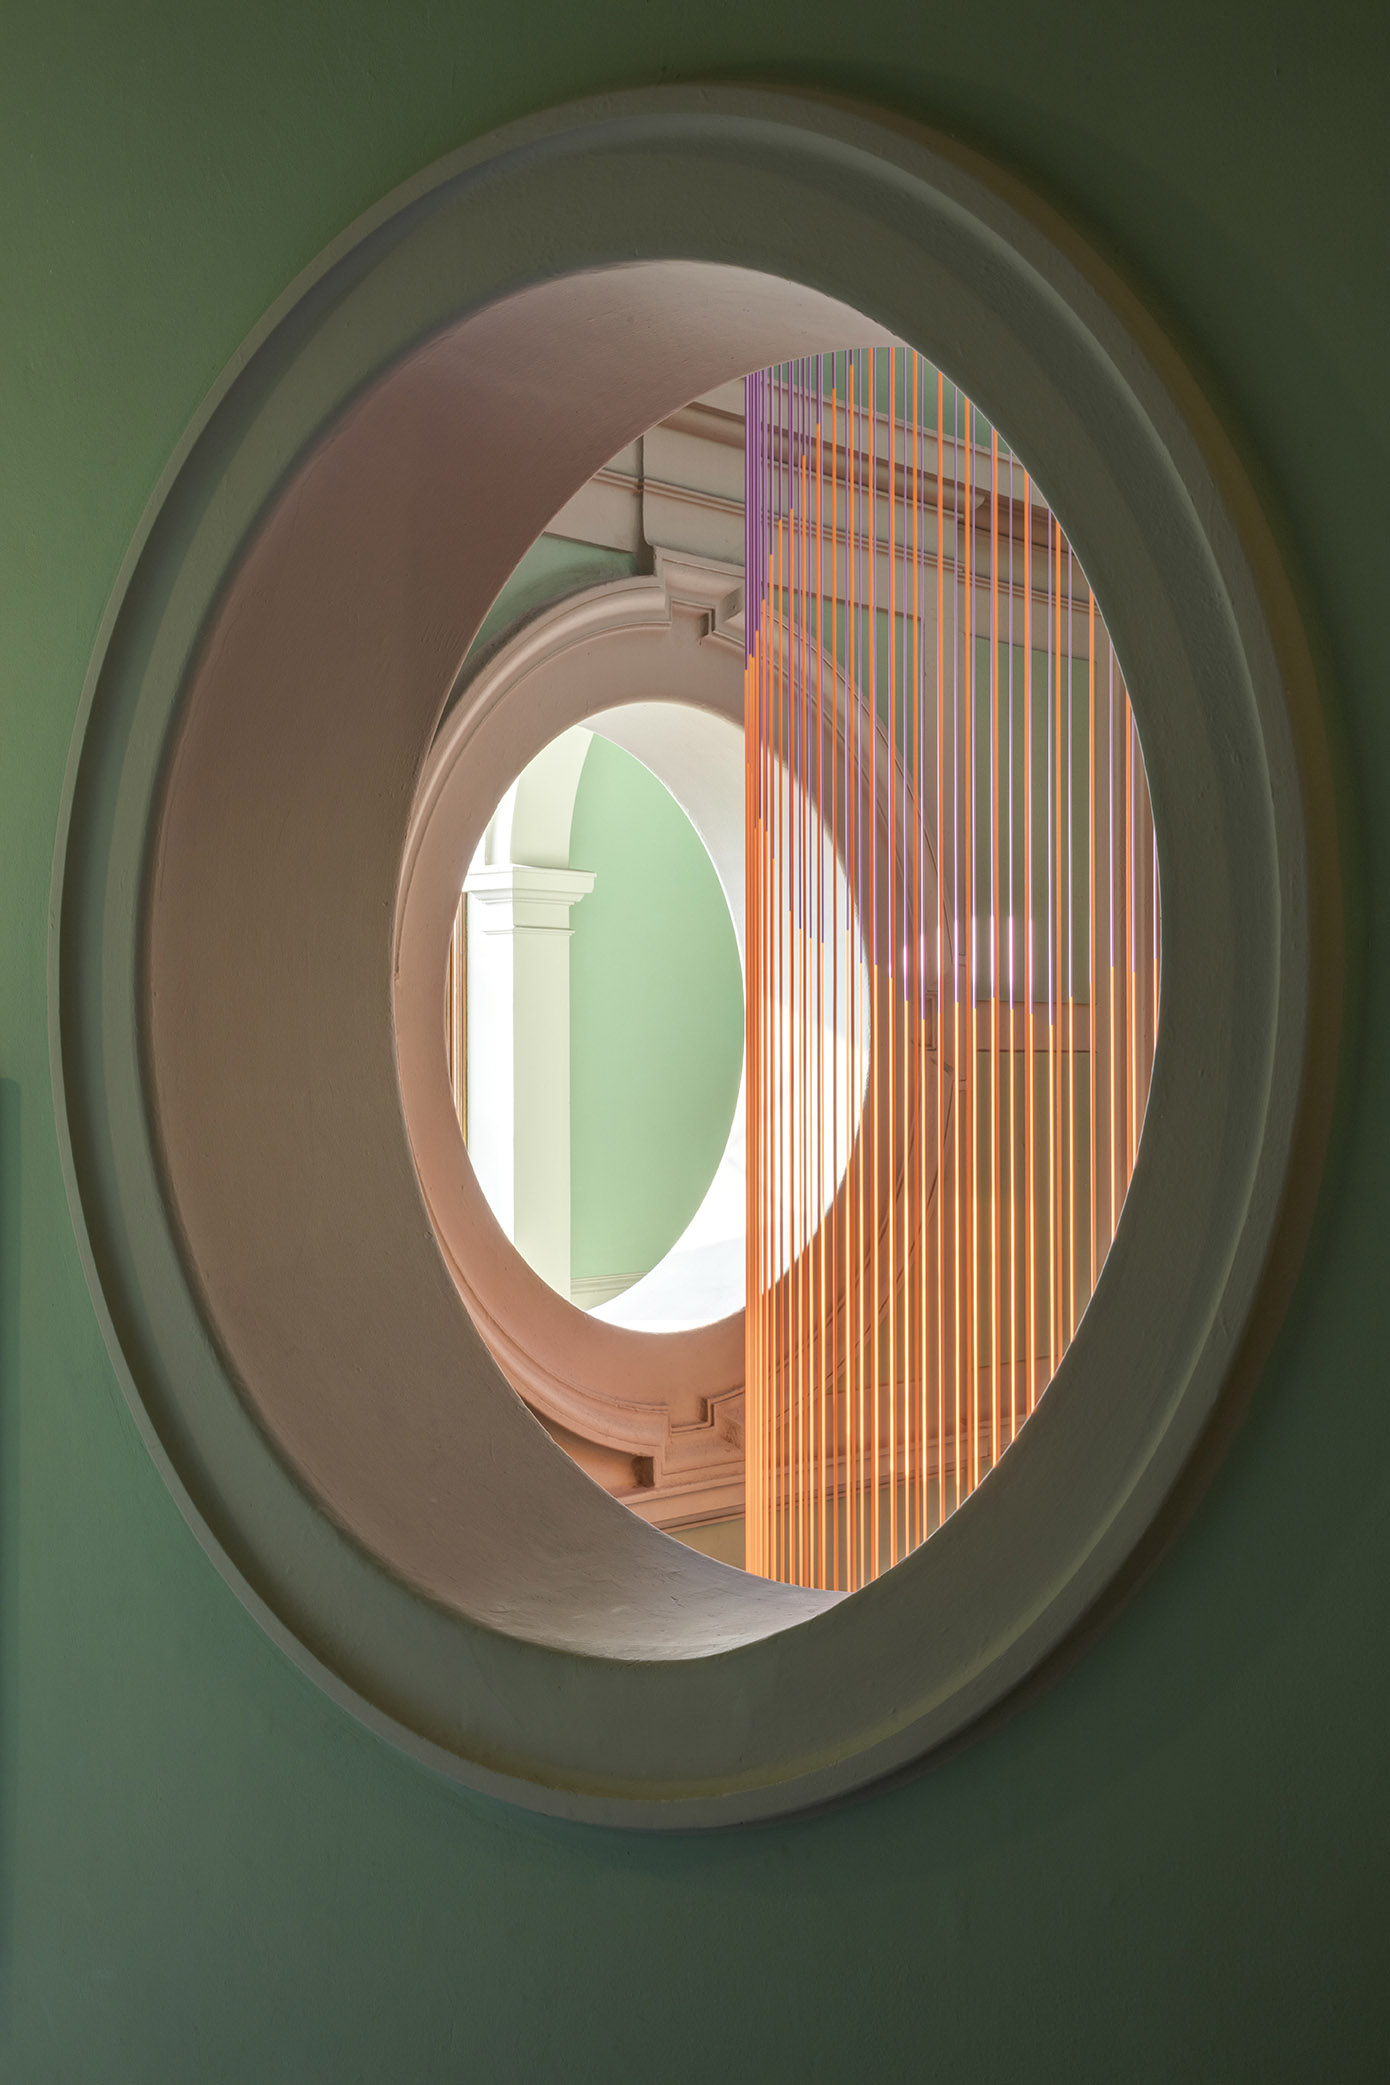 View of Green Room silicon cords through porthole on stairwell